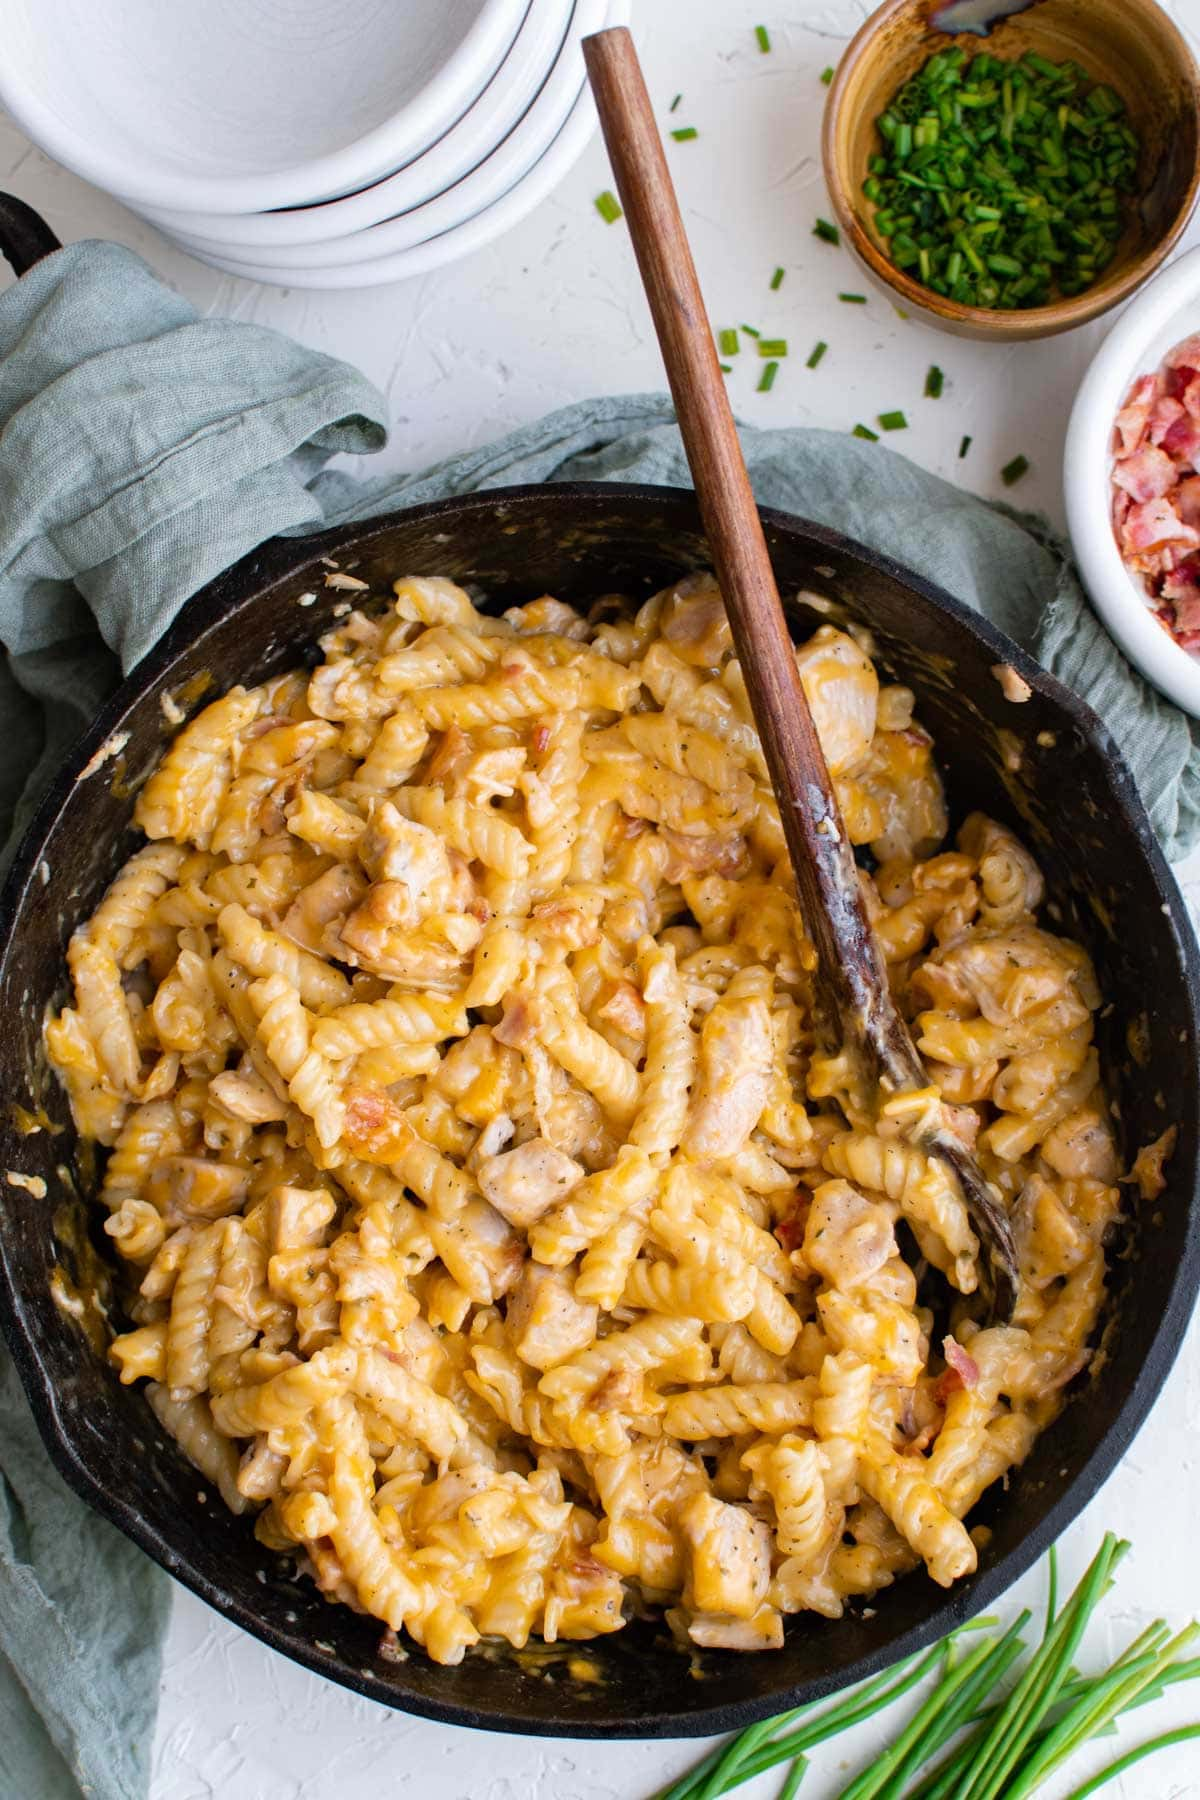 cast iron skillet with cheesy pasta with chicken and bacon, bowl of bacon, bowl of chives, empty white bowls, wooden spoon